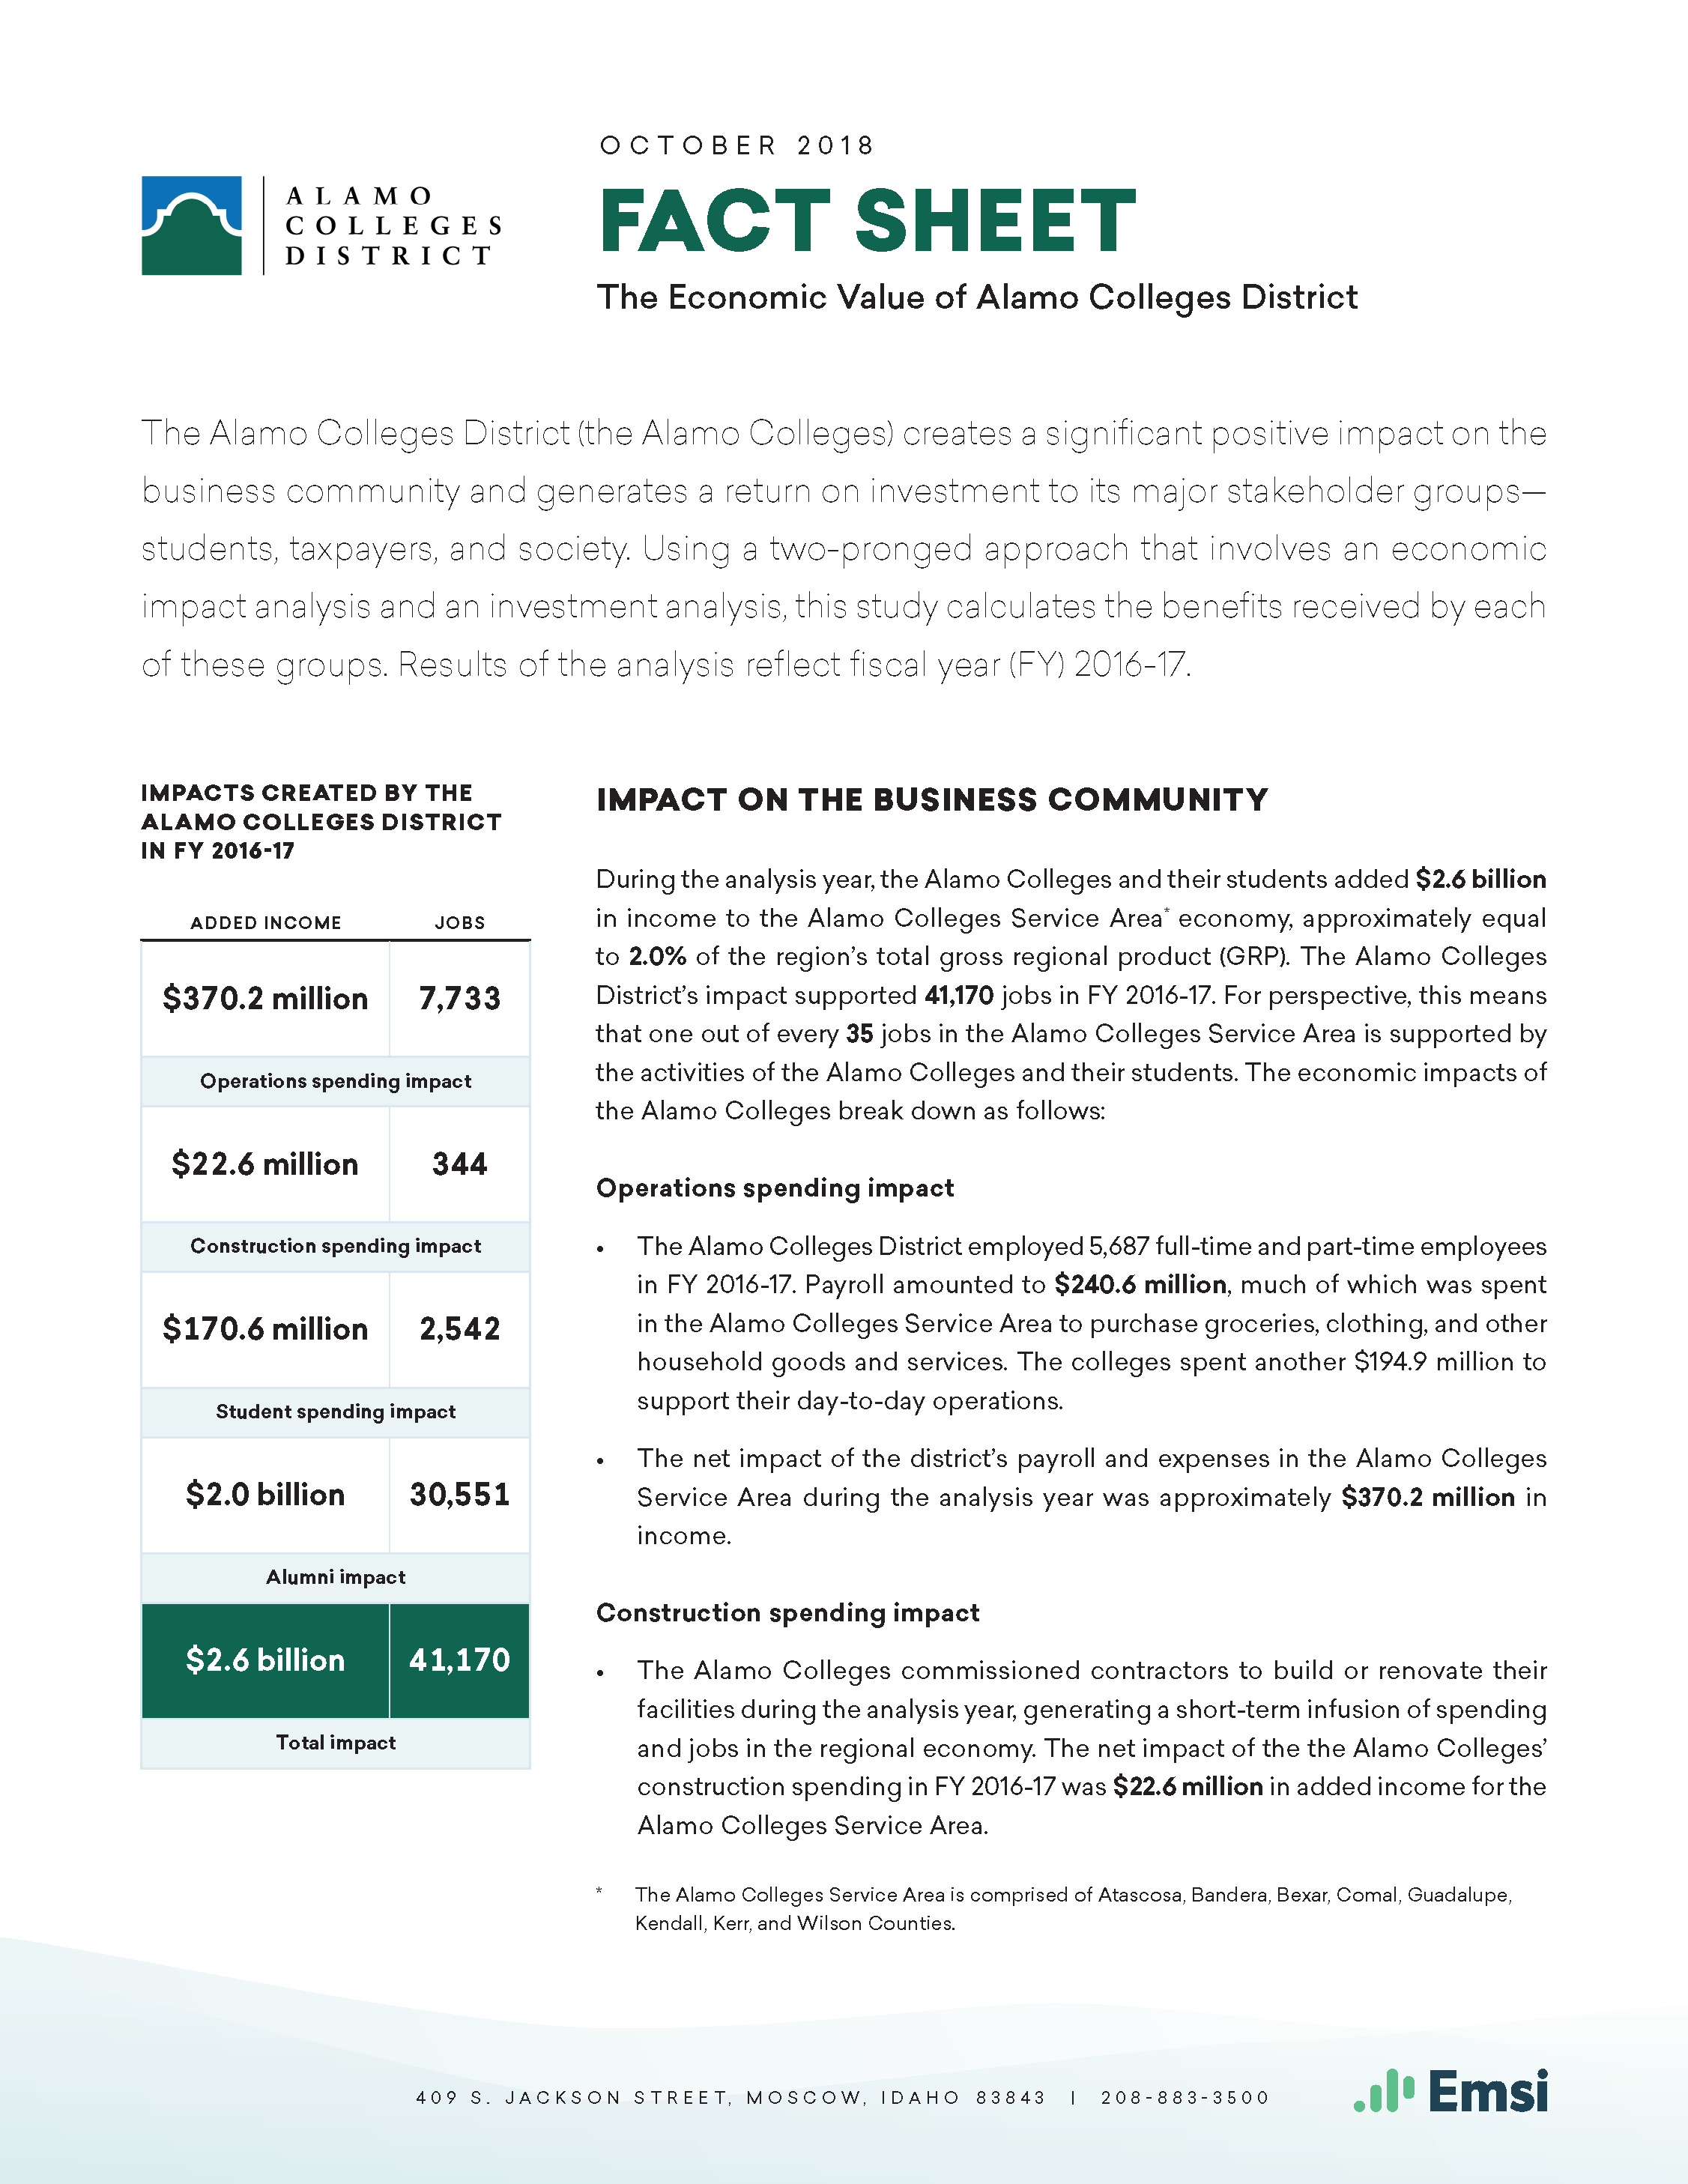 Alamo Colleges District Fact Sheet Front Page Image